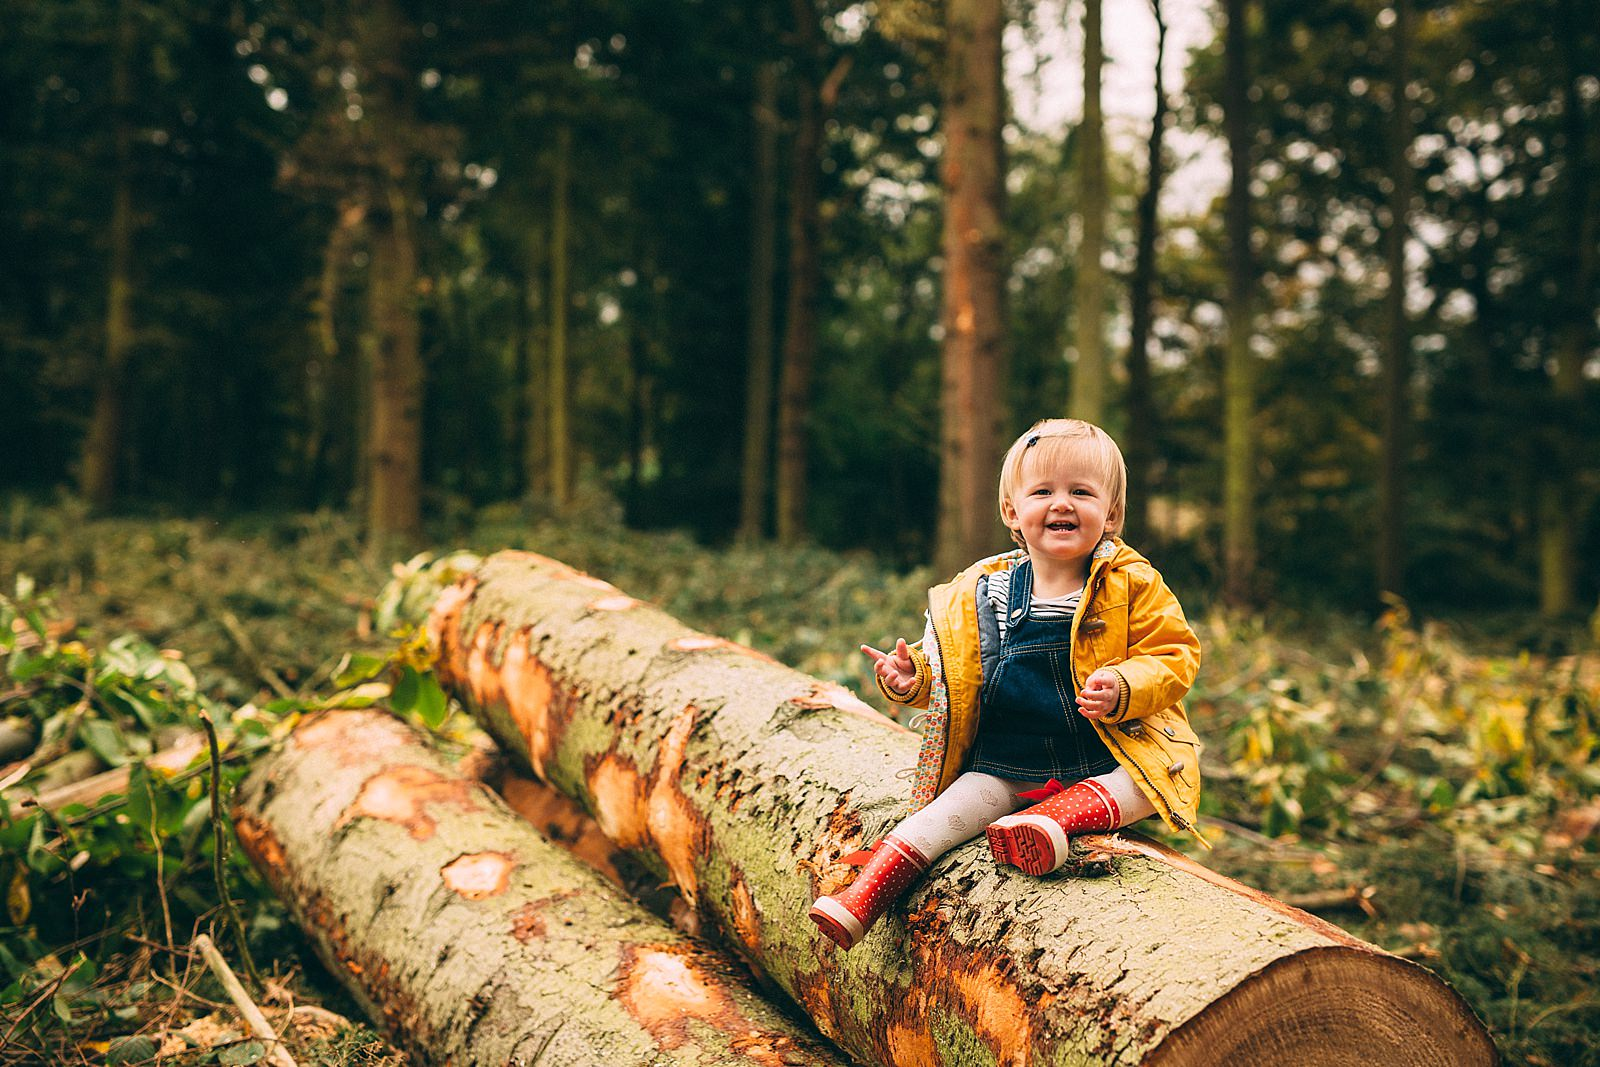 little girl in yellow coat sitting on a wooden log smiling